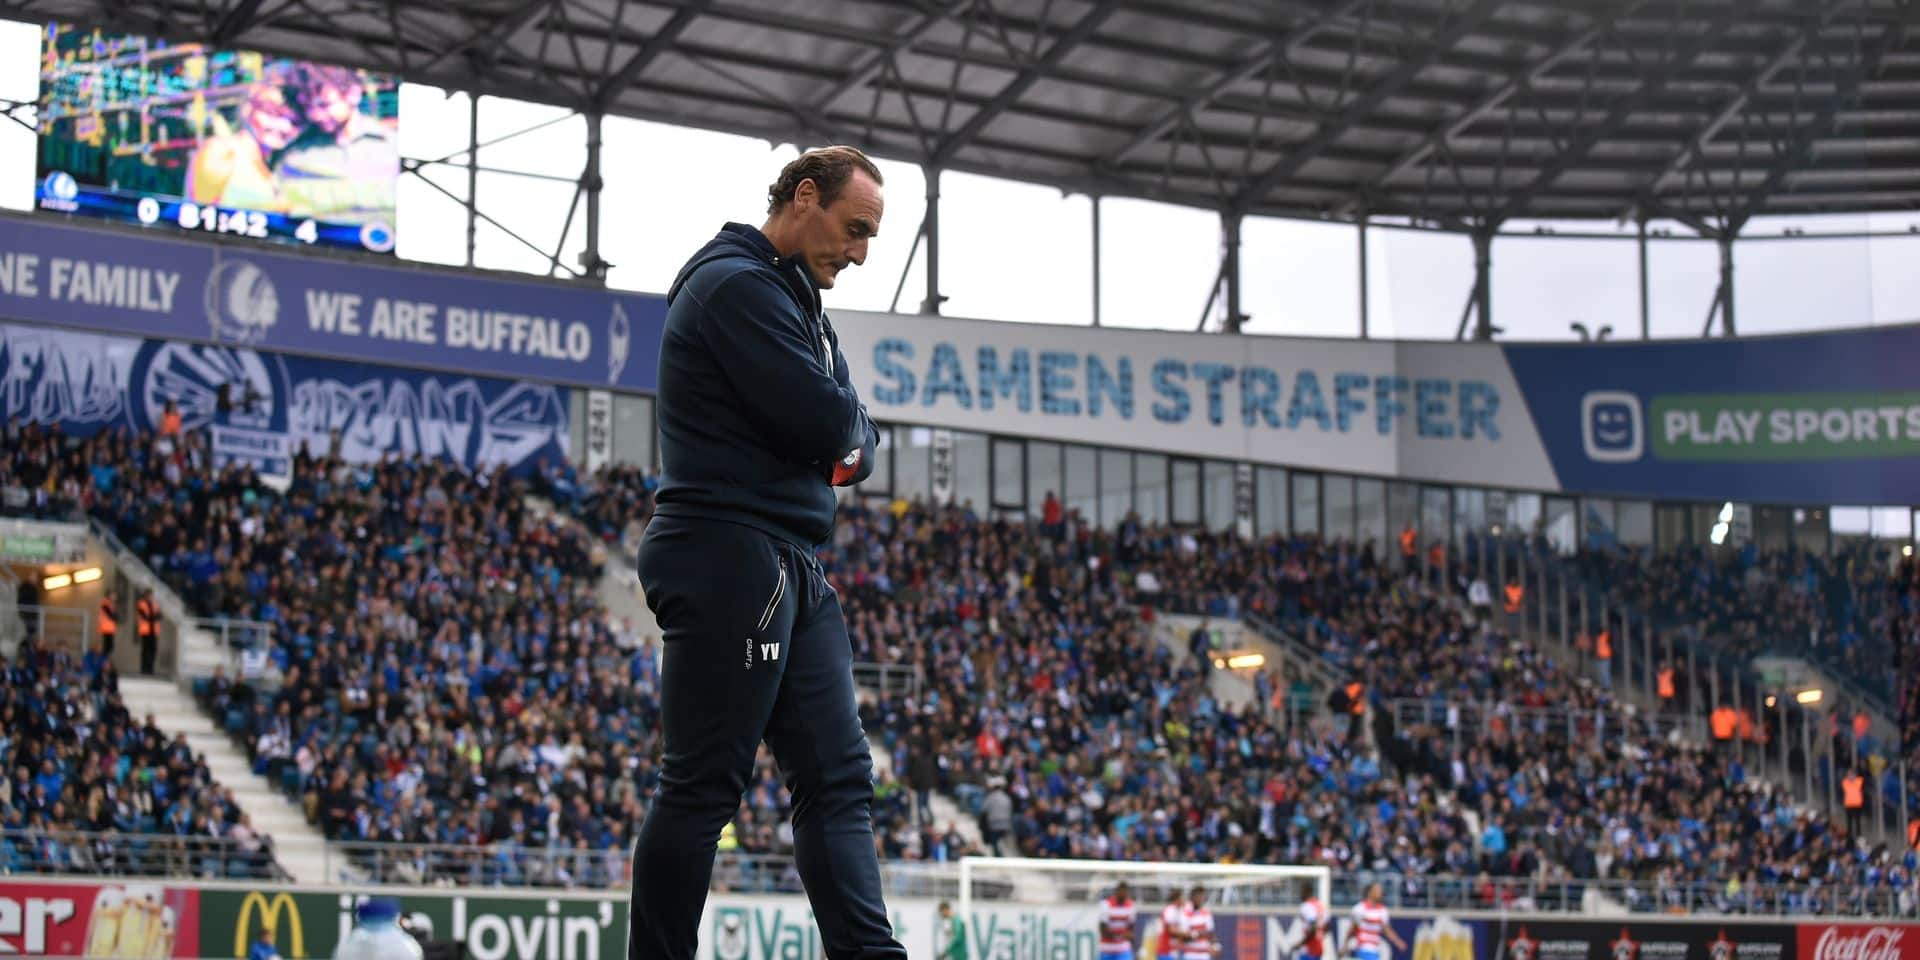 Gent's head coach Yves Vanderhaeghe reacts during a soccer match between KAA Gent and Club Brugge KV, Sunday 23 September 2018 in Gent, on the eighth day of the 'Jupiler Pro League' Belgian soccer championship season 2018-2019. BELGA PHOTO JOHN THYS